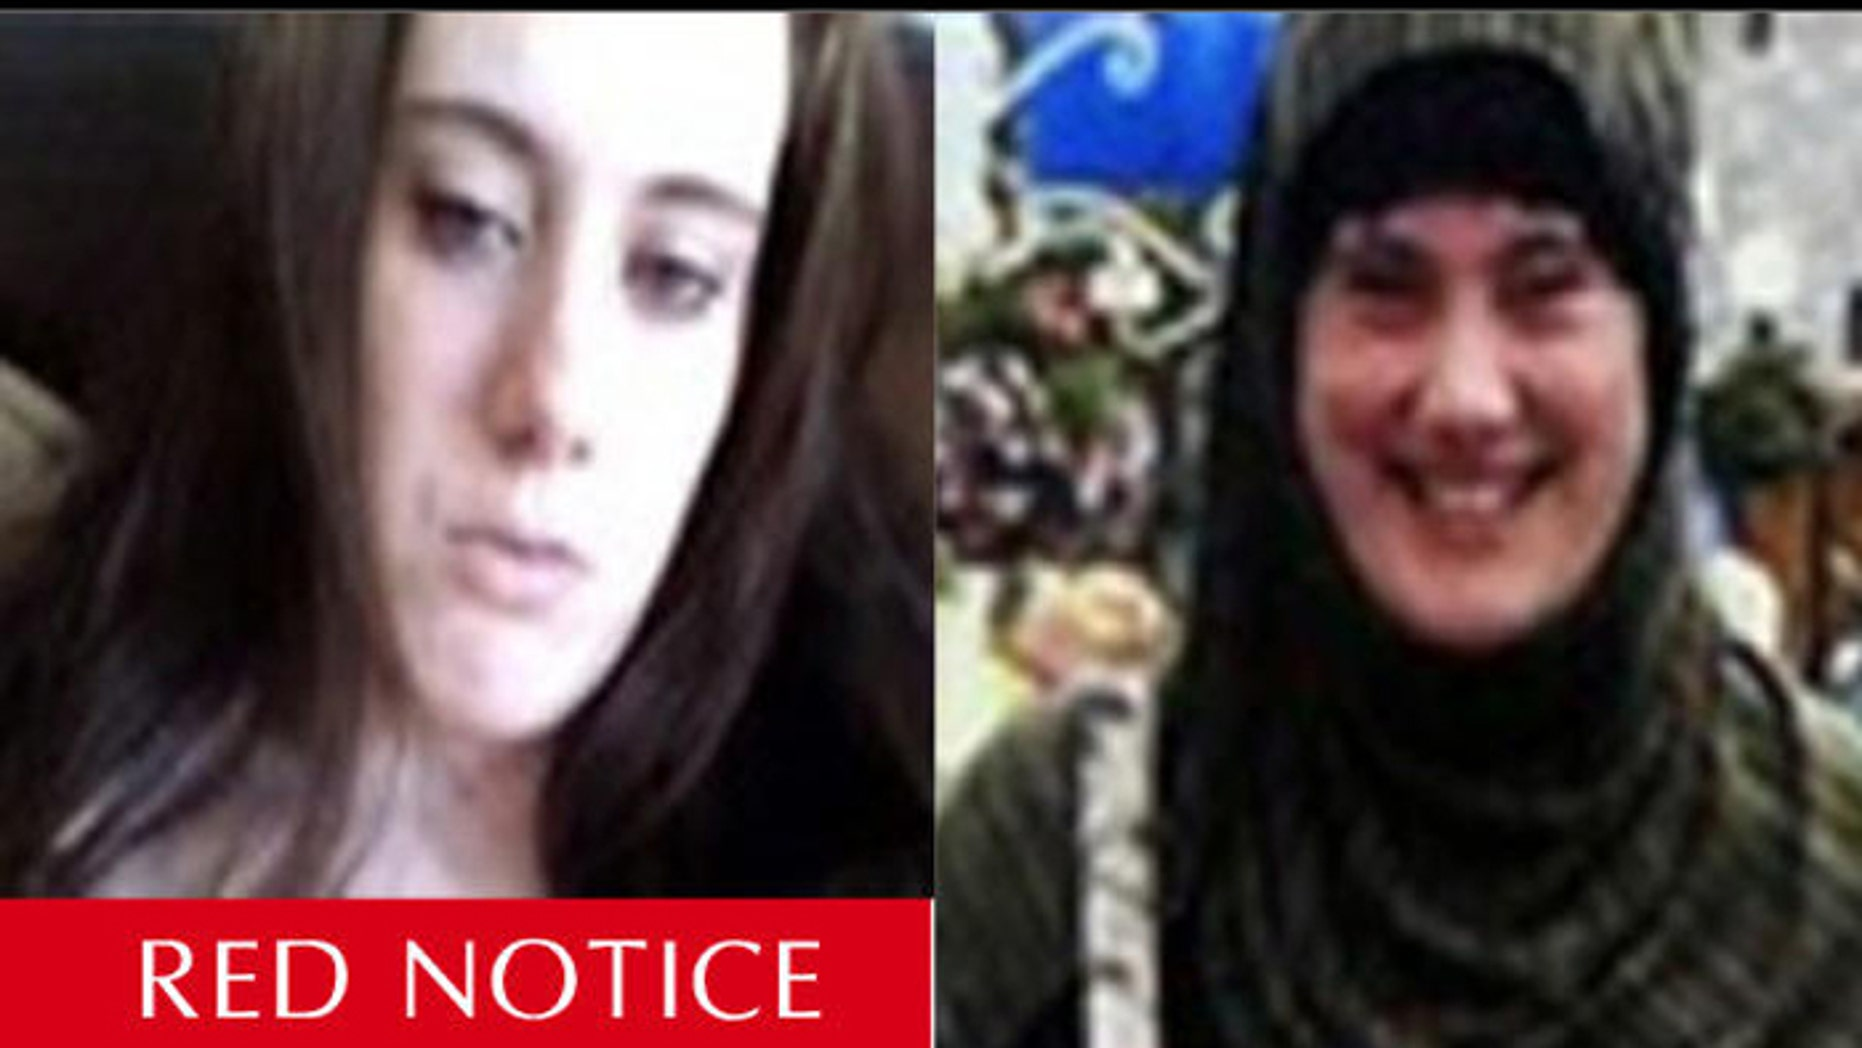 An INTERPOL bulletin has officials in nearly 200 nations on the lookout for Lewthwaite. (INTERPOL)